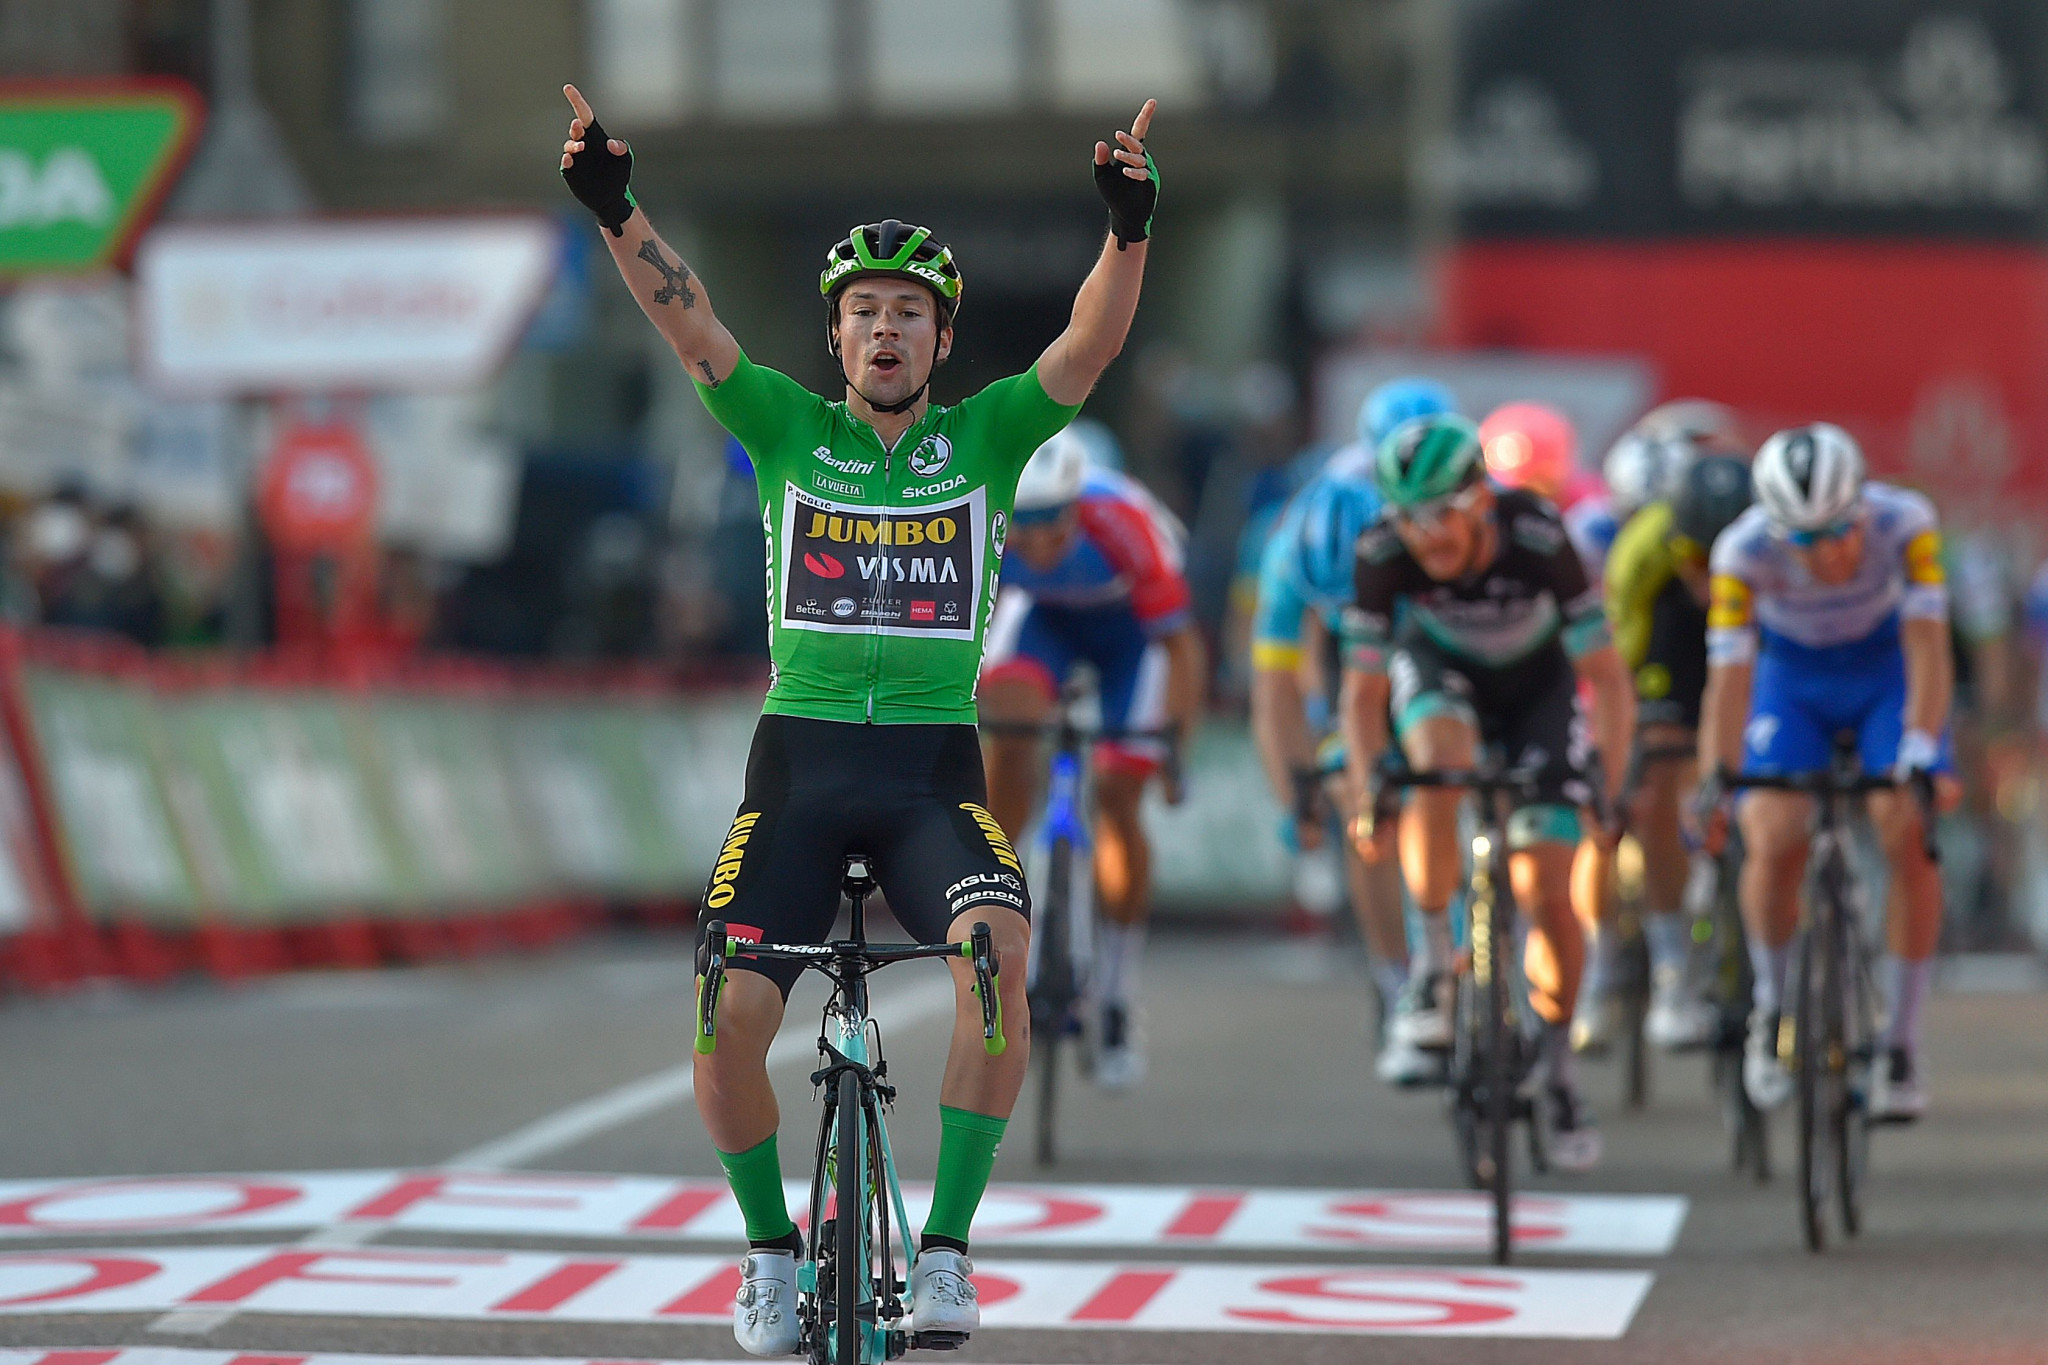 Roglič clinches third stage win to move into race lead at Vuelta a España